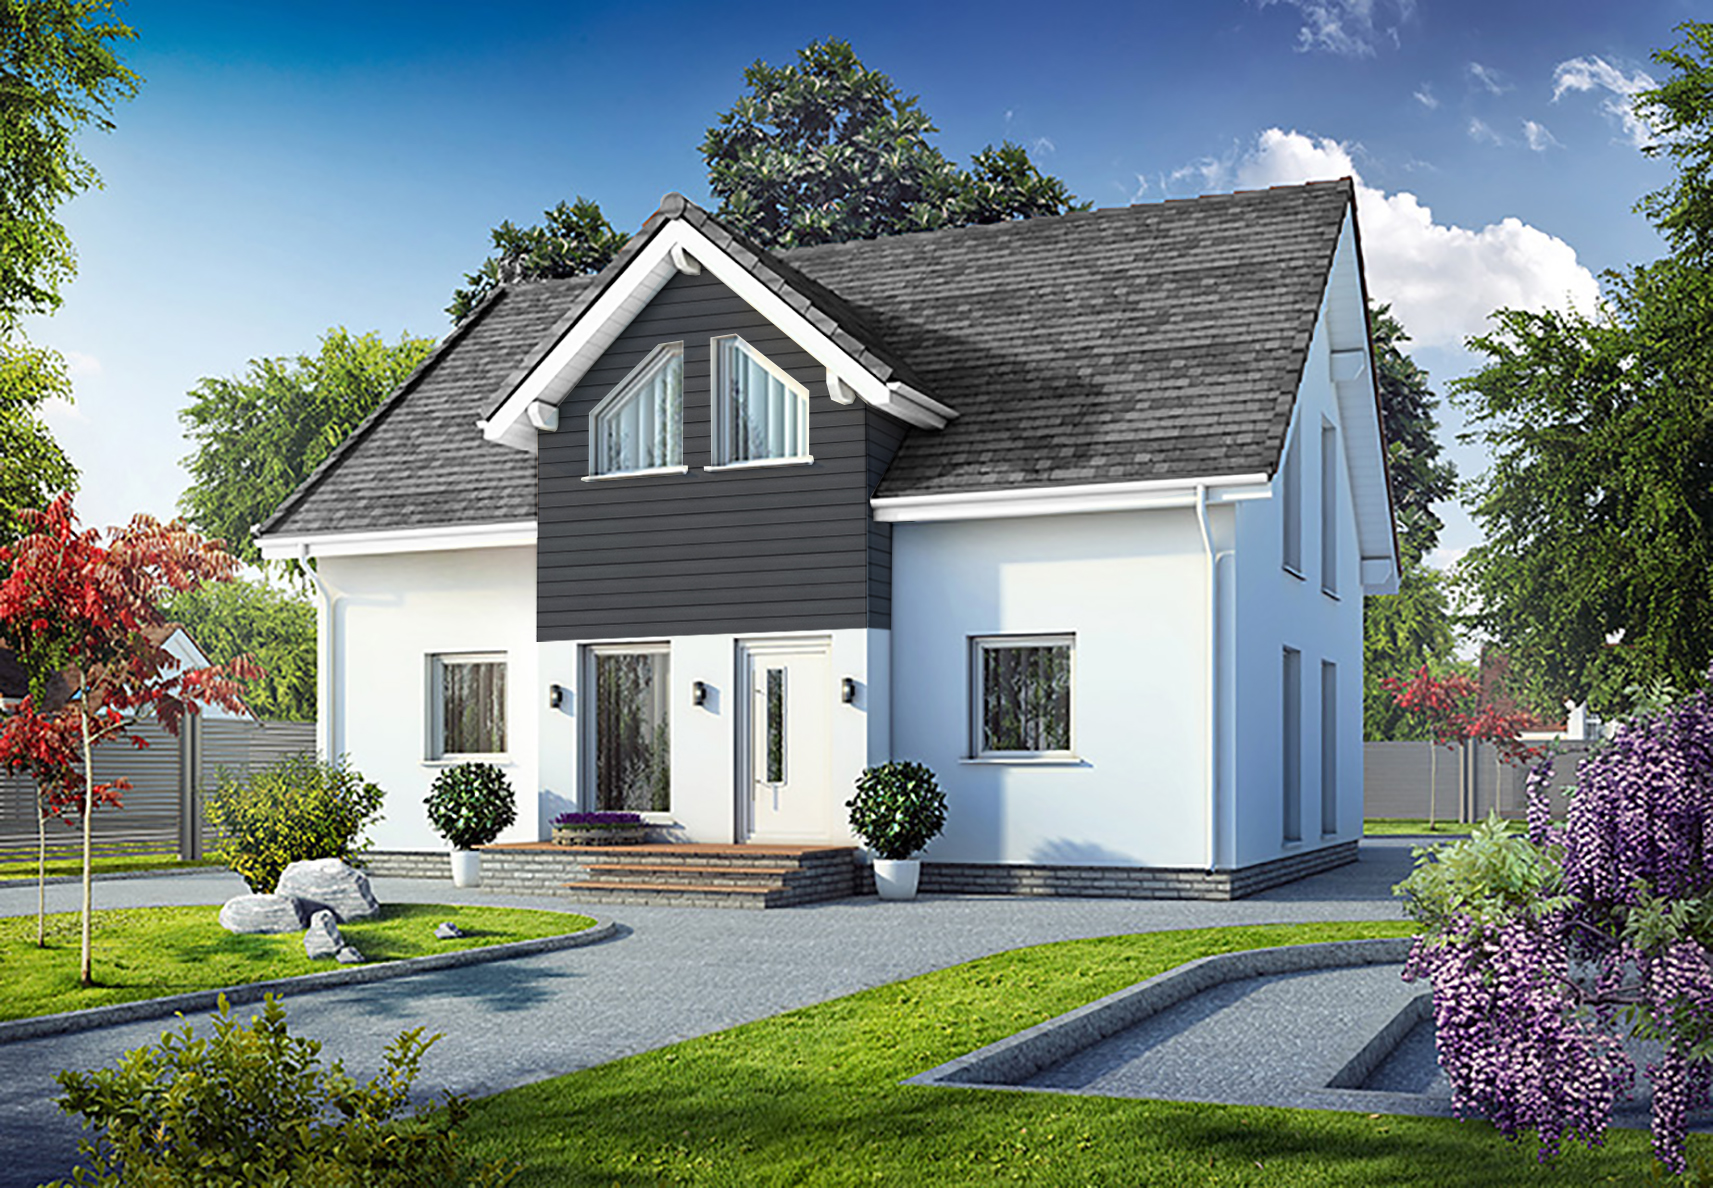 DESIGN - Although we offer standard house designs on the development, we also give you the opportunity to choose a house from our collection of over 50 unique styles and customise it to create the home of your dreams to the budget you set.